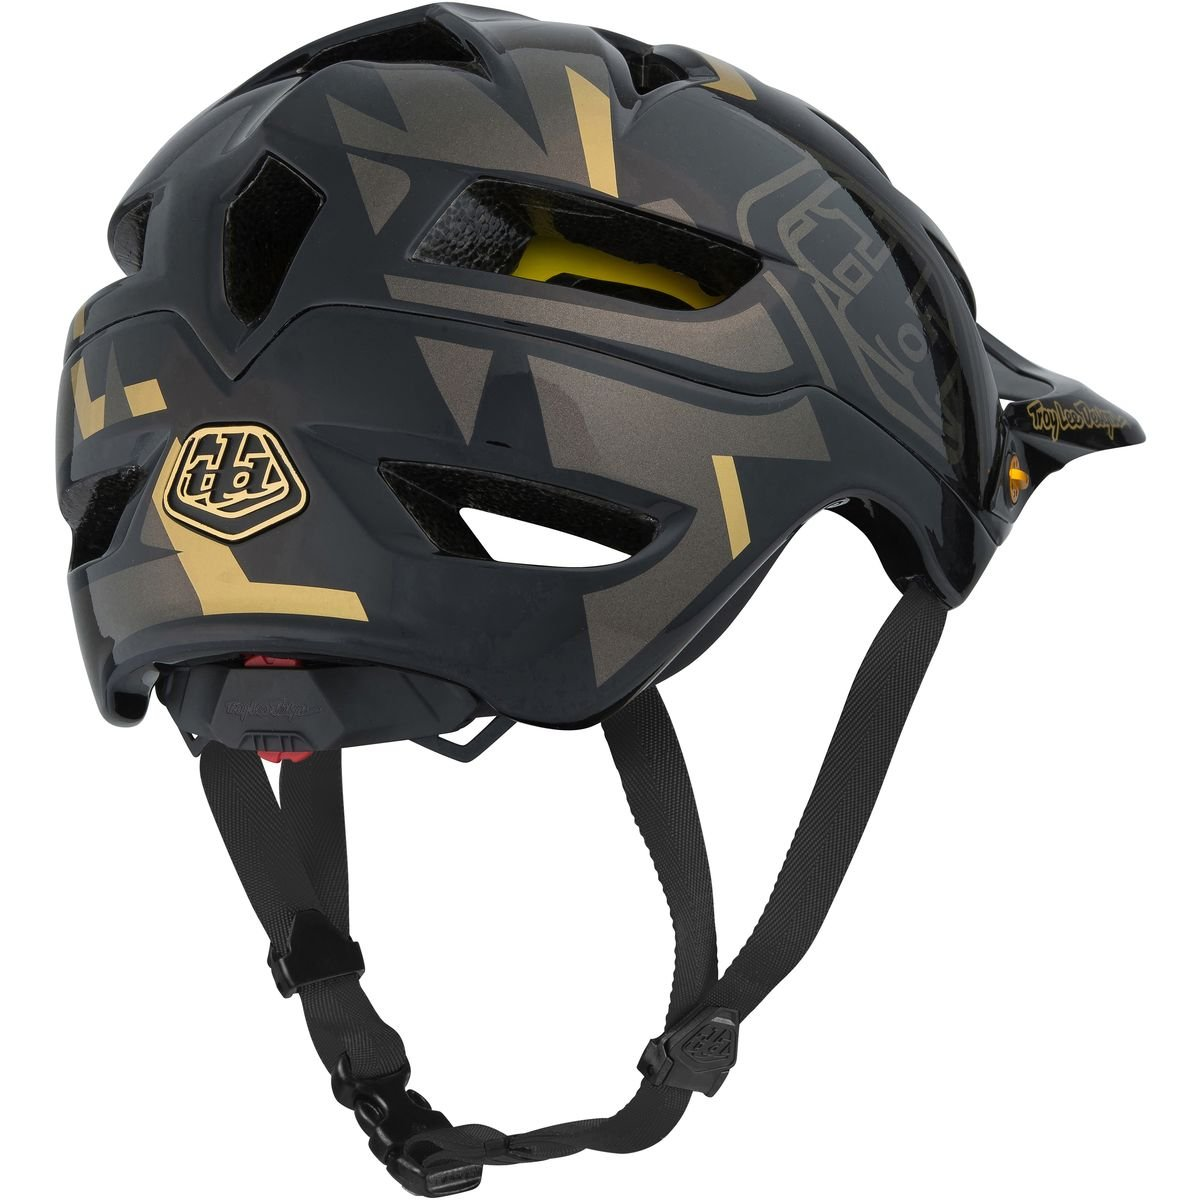 Amazon.com: Troy Lee Designs Vertigo Adult A1 Bike Sports BMX Helmet - Black / X-Large/2X-Large: Sports & Outdoors